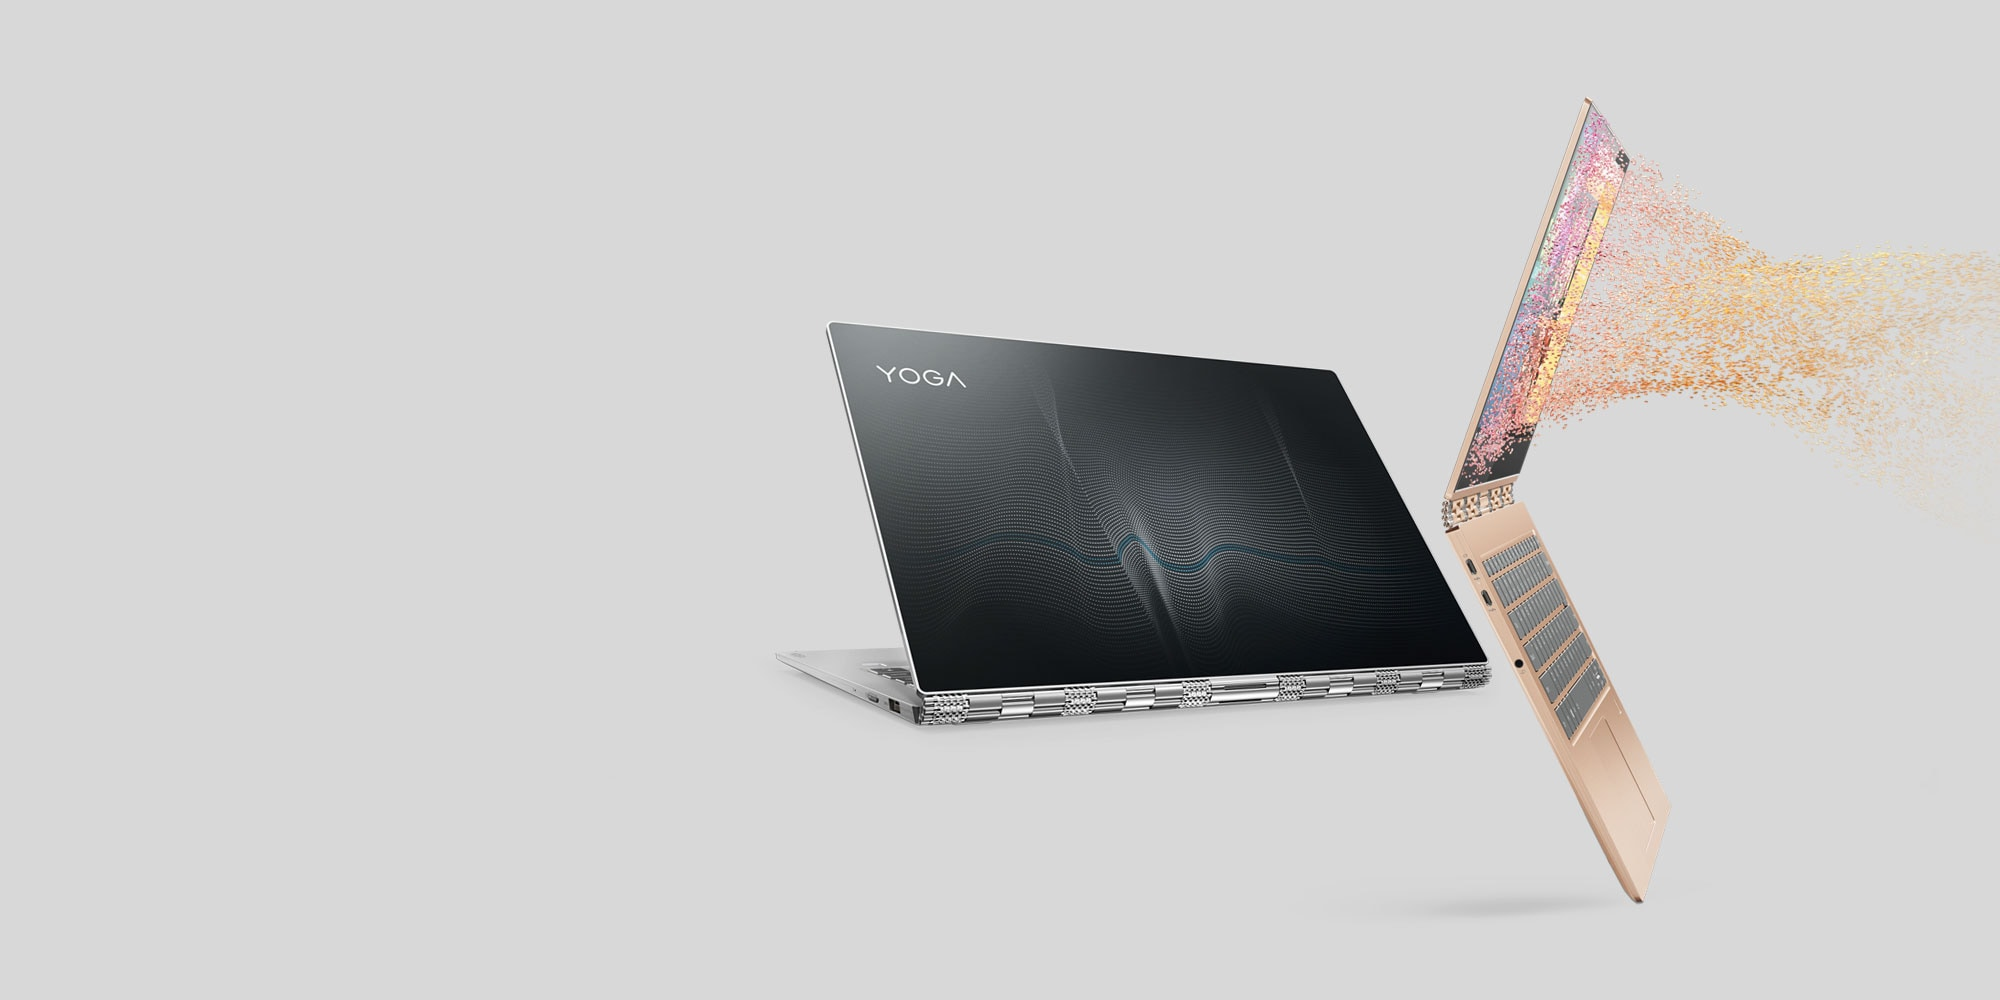 YOGA 920, YOGA 920 Glass